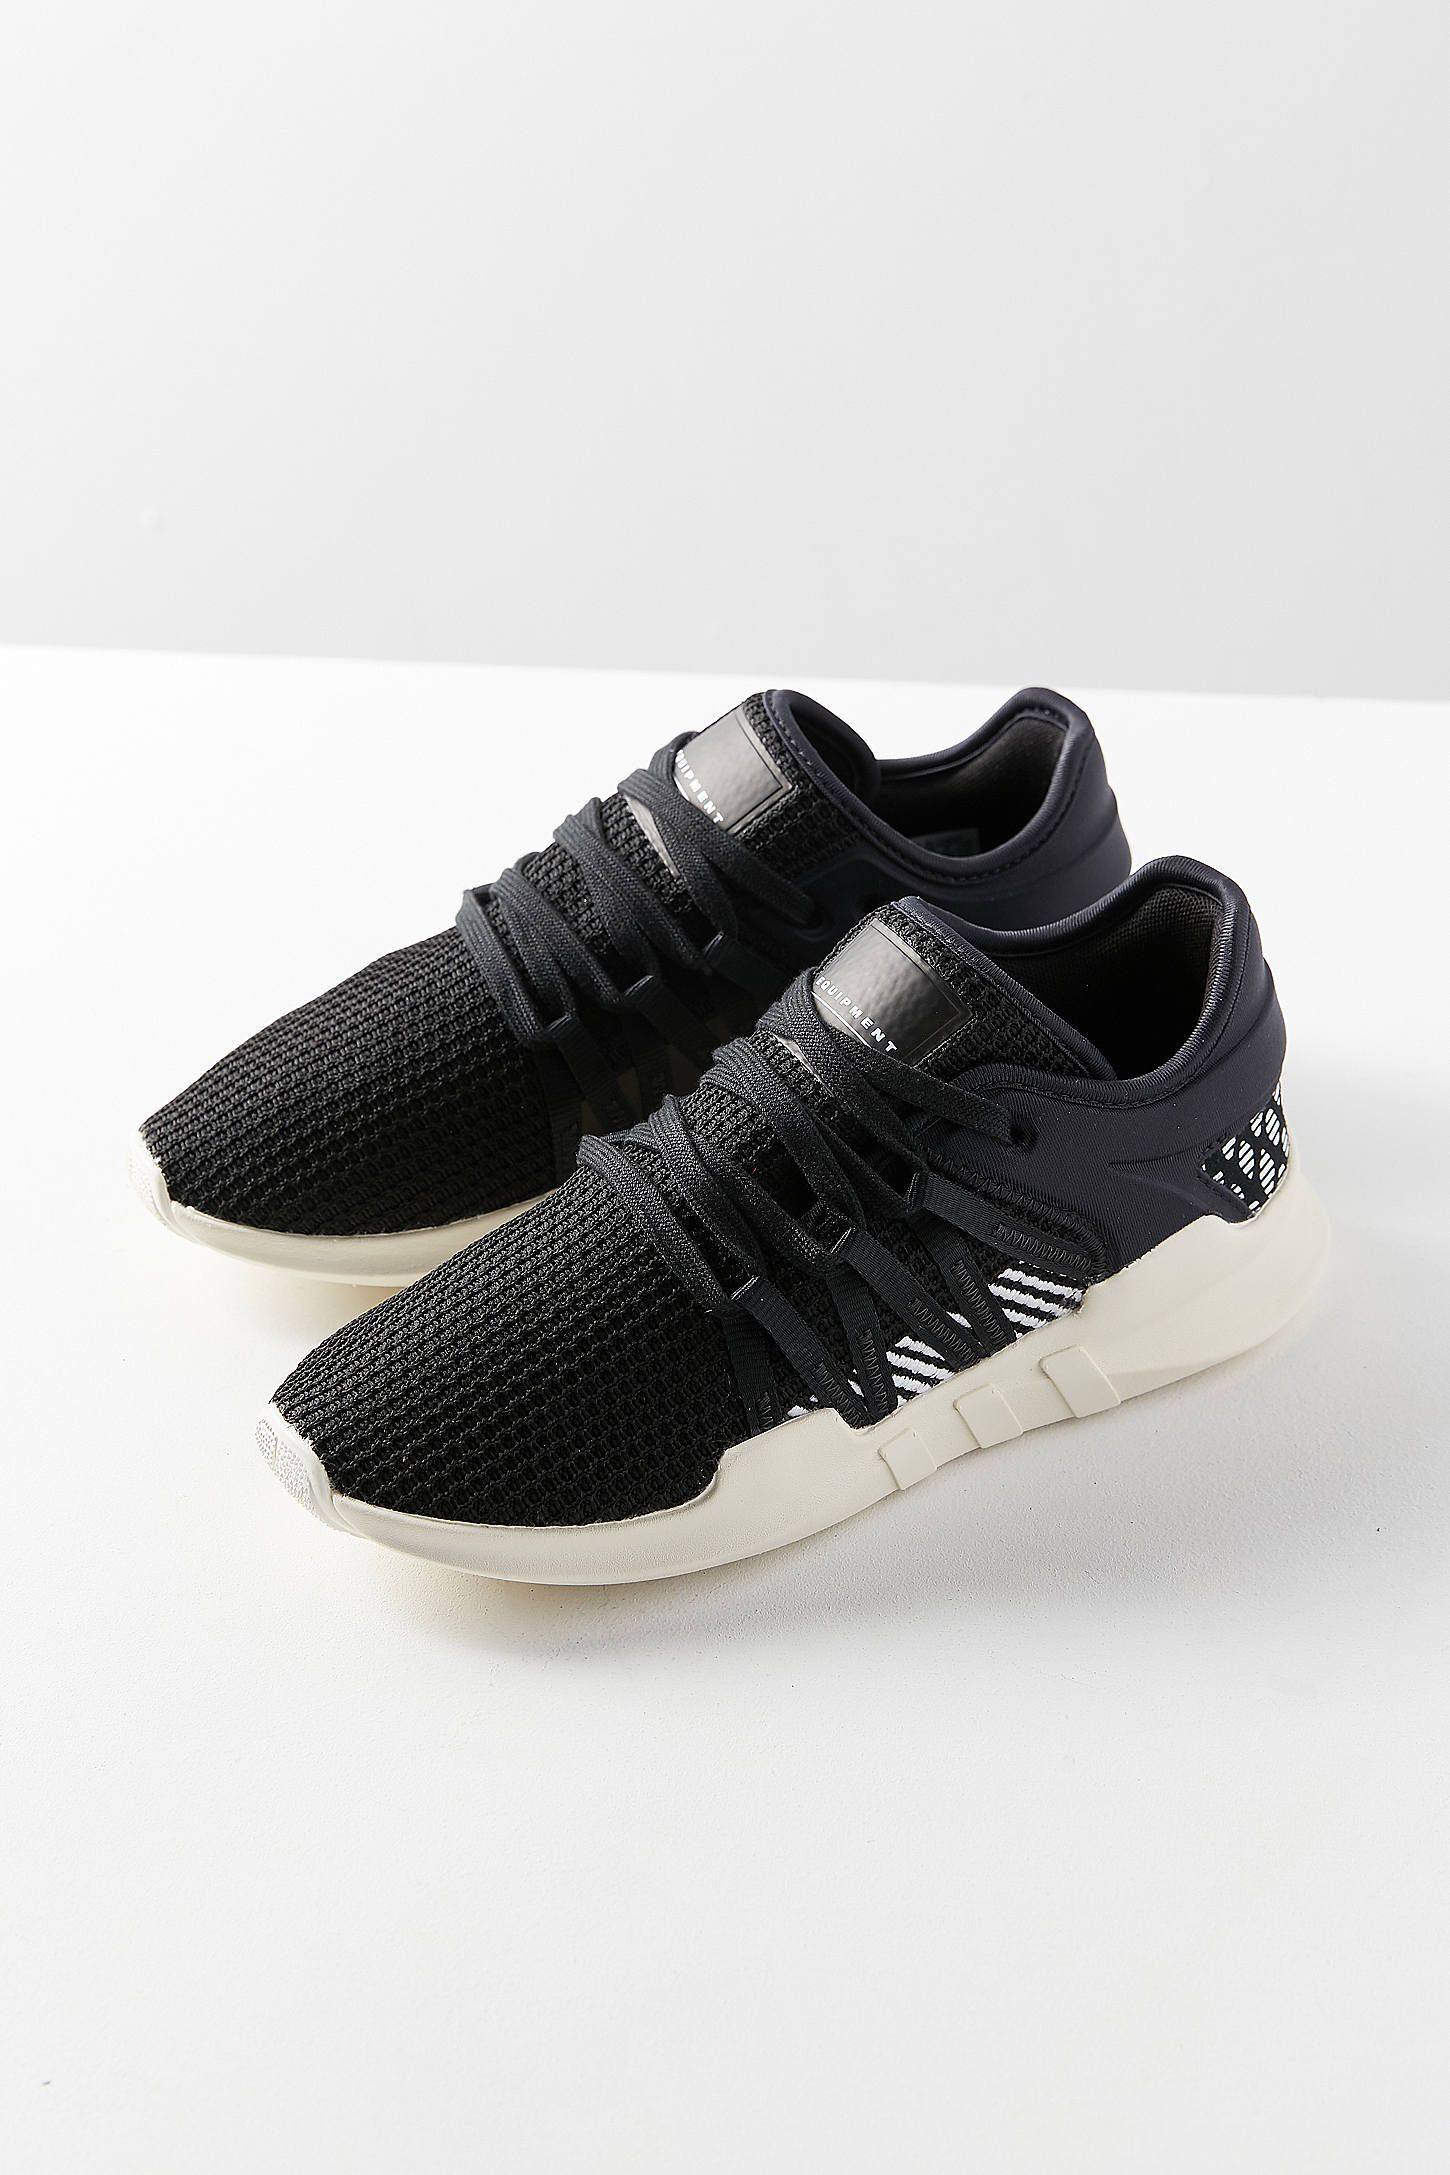 67b5b68d6f44 Shop adidas Originals EQT Racing ADV Knit Sneaker at Urban Outfitters  today. We carry all the latest styles